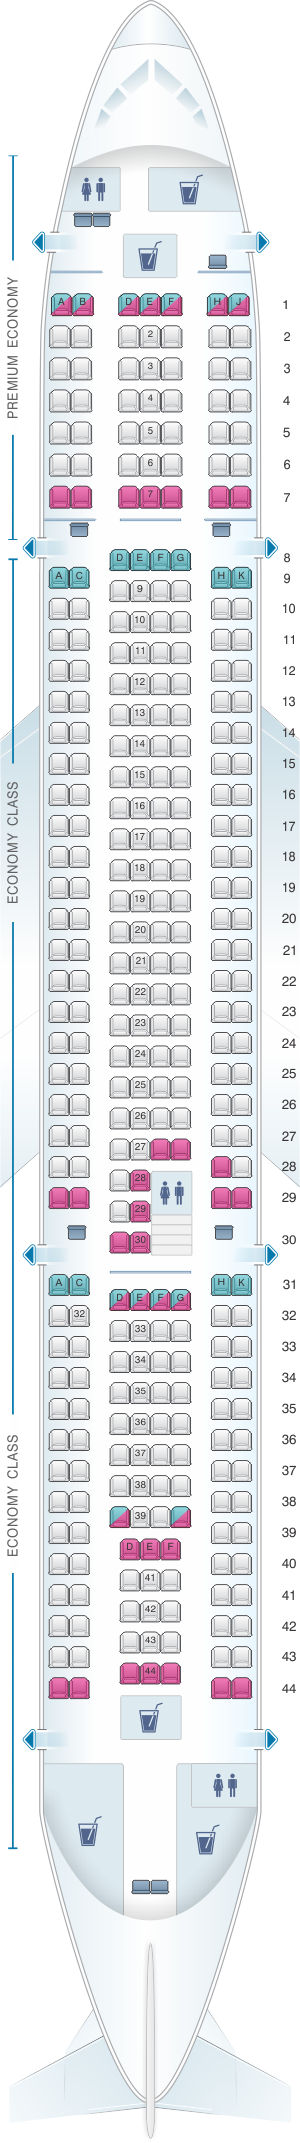 Seat map for Thomas Cook Airlines Airbus A330 200